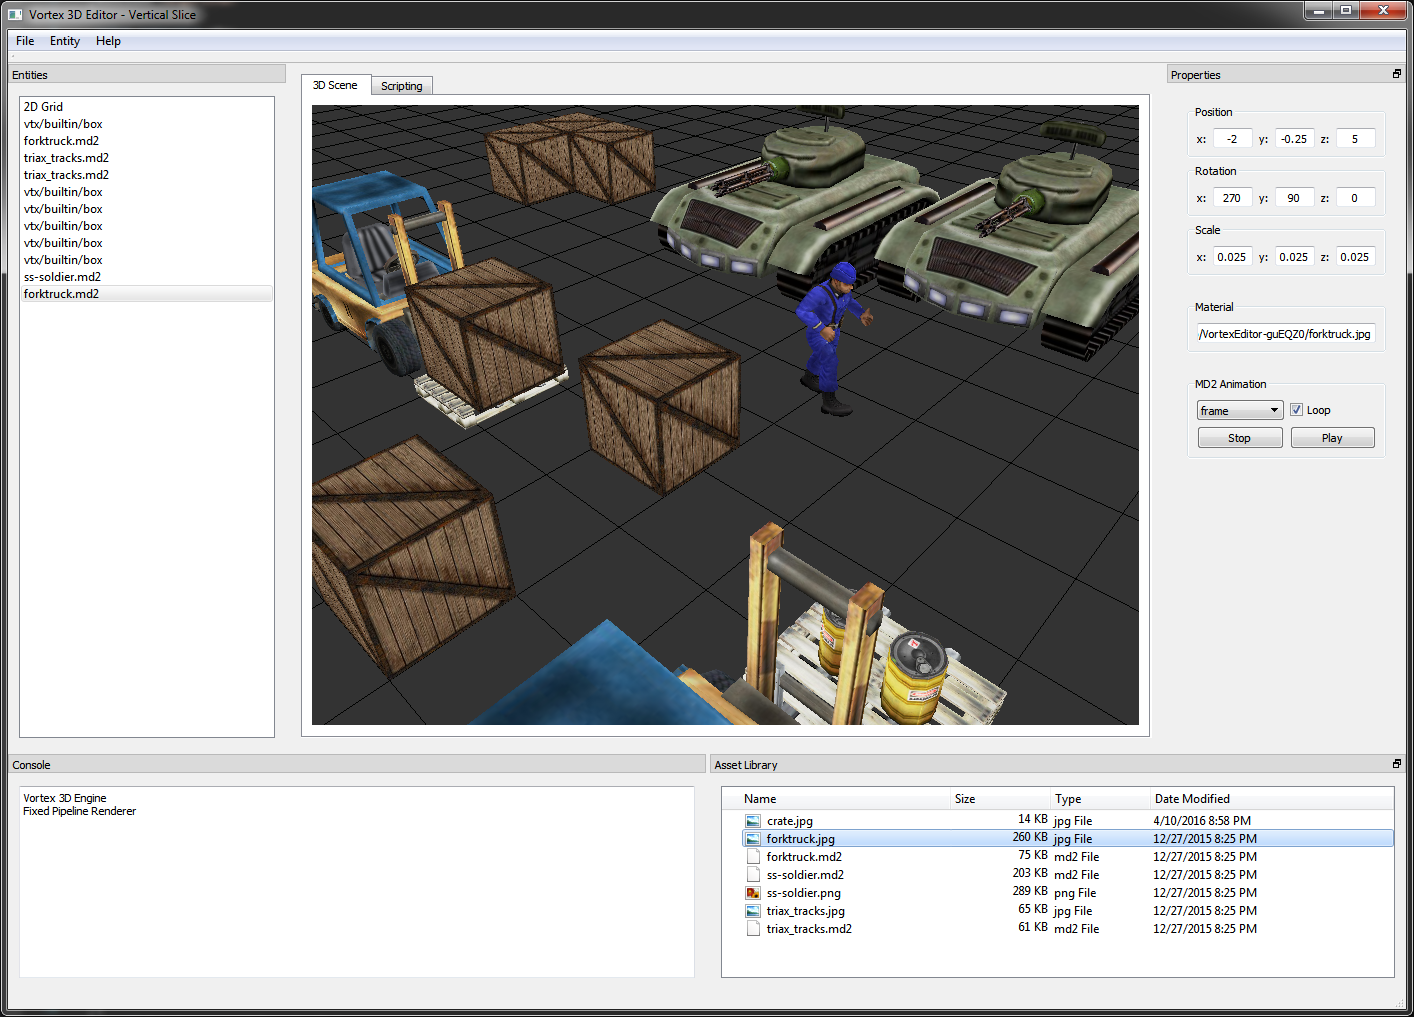 Building a scene for the Vortex Engine using the Vortex Editor.